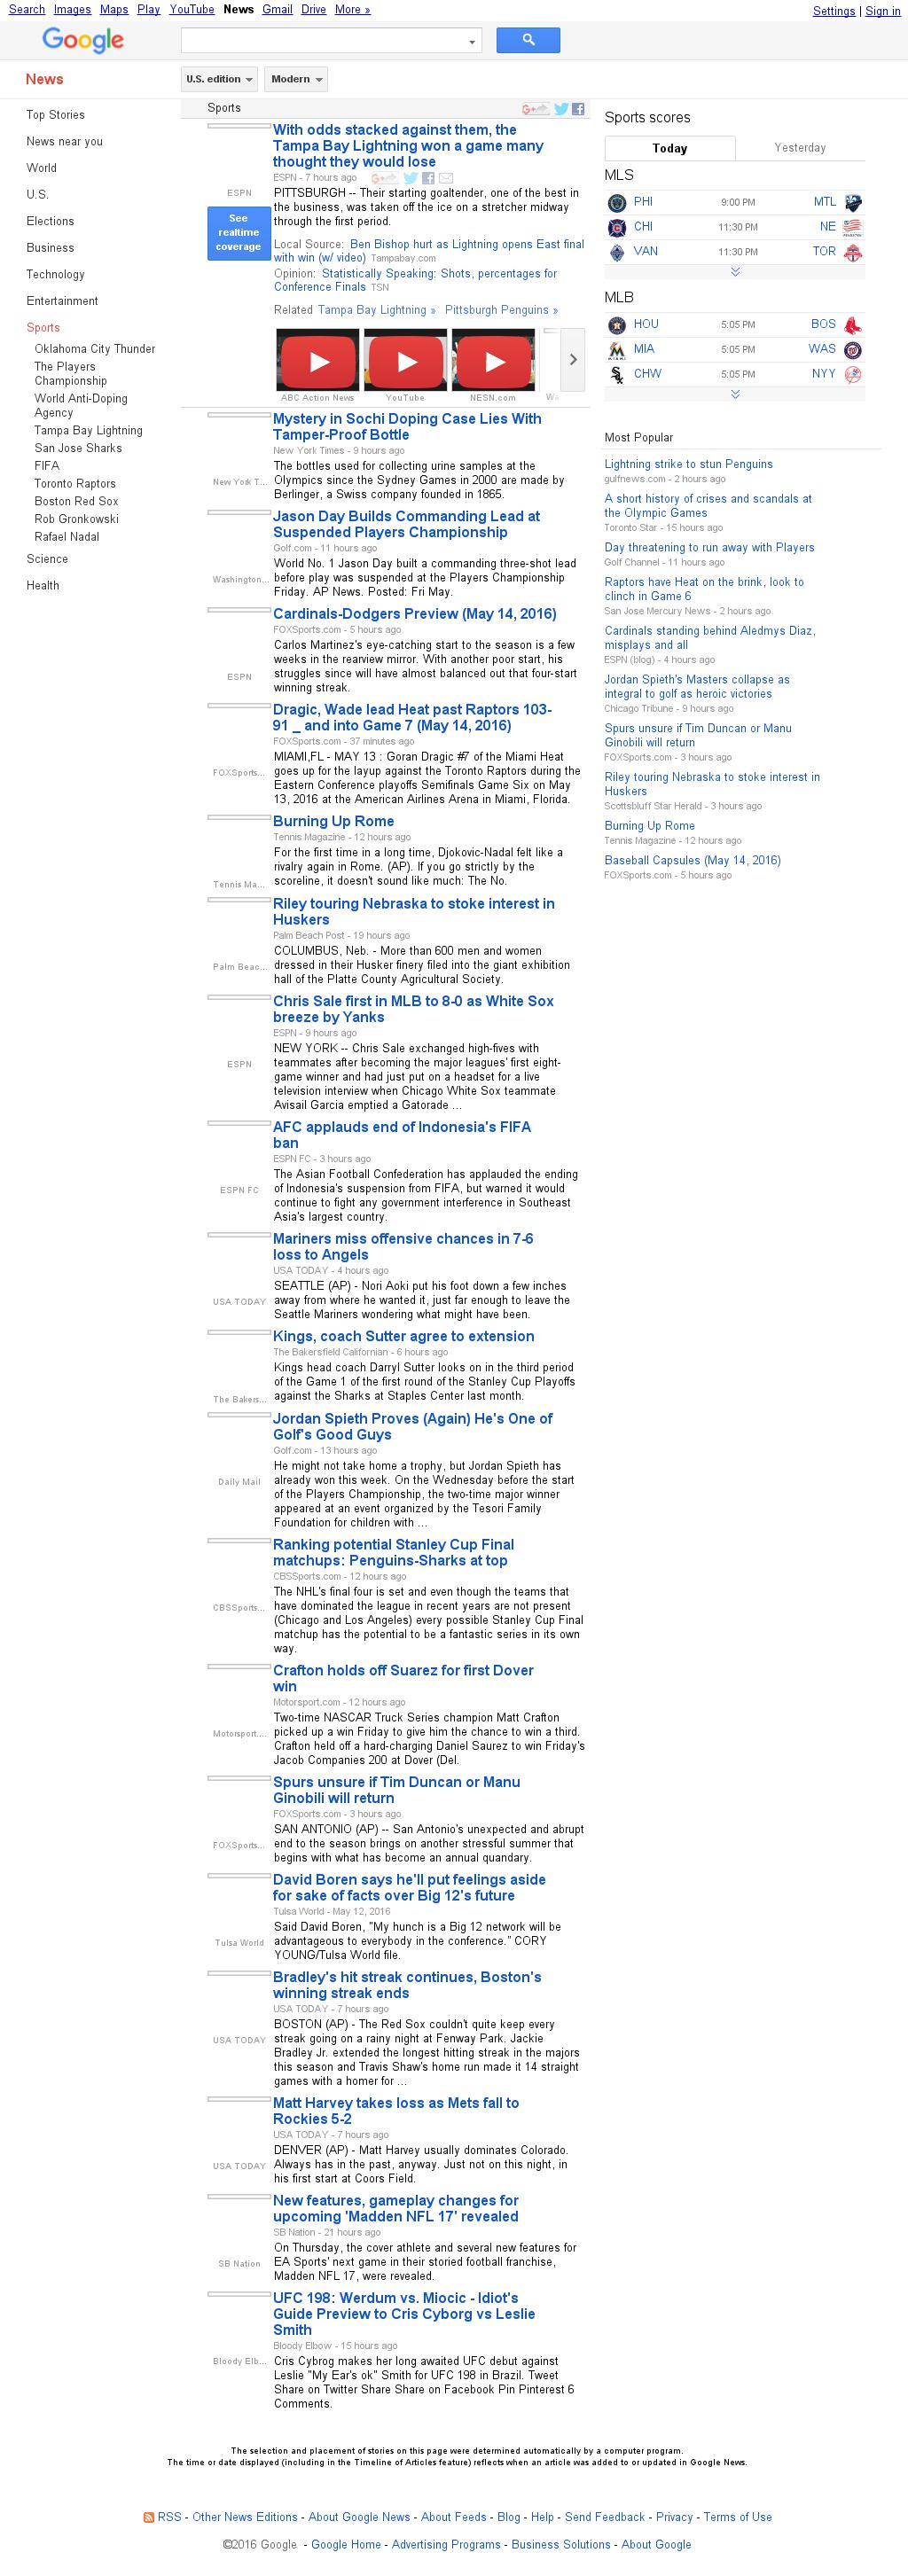 Google News: Sports at Saturday May 14, 2016, 12:07 p.m. UTC